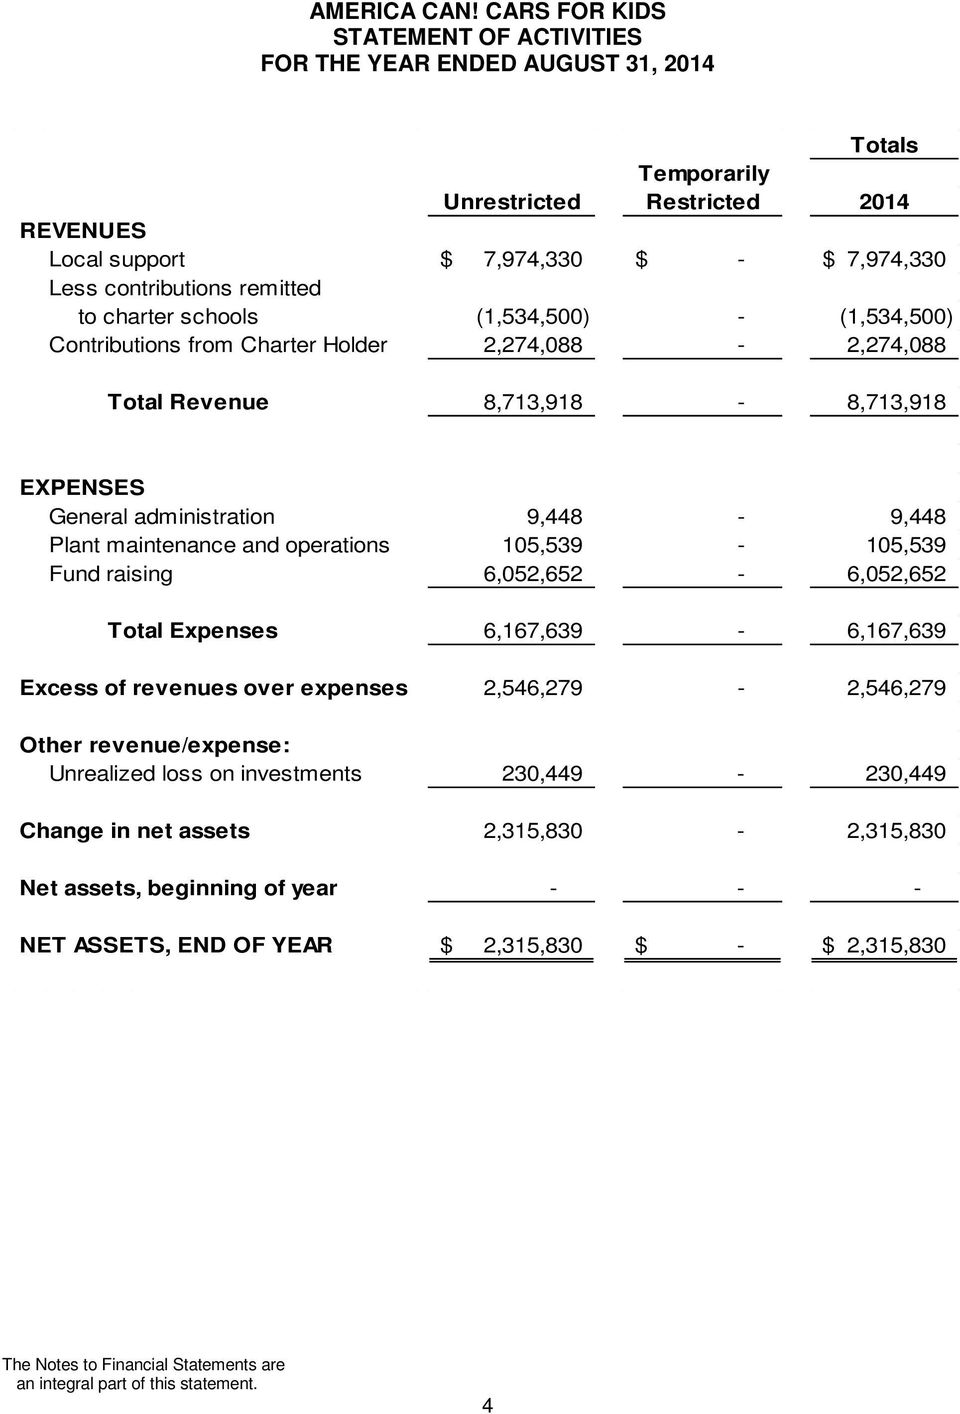 105,539-105,539 Fund raising 6,052,652-6,052,652 Total Expenses 6,167,639-6,167,639 Excess of revenues over expenses 2,546,279-2,546,279 Other revenue/expense: Unrealized loss on investments